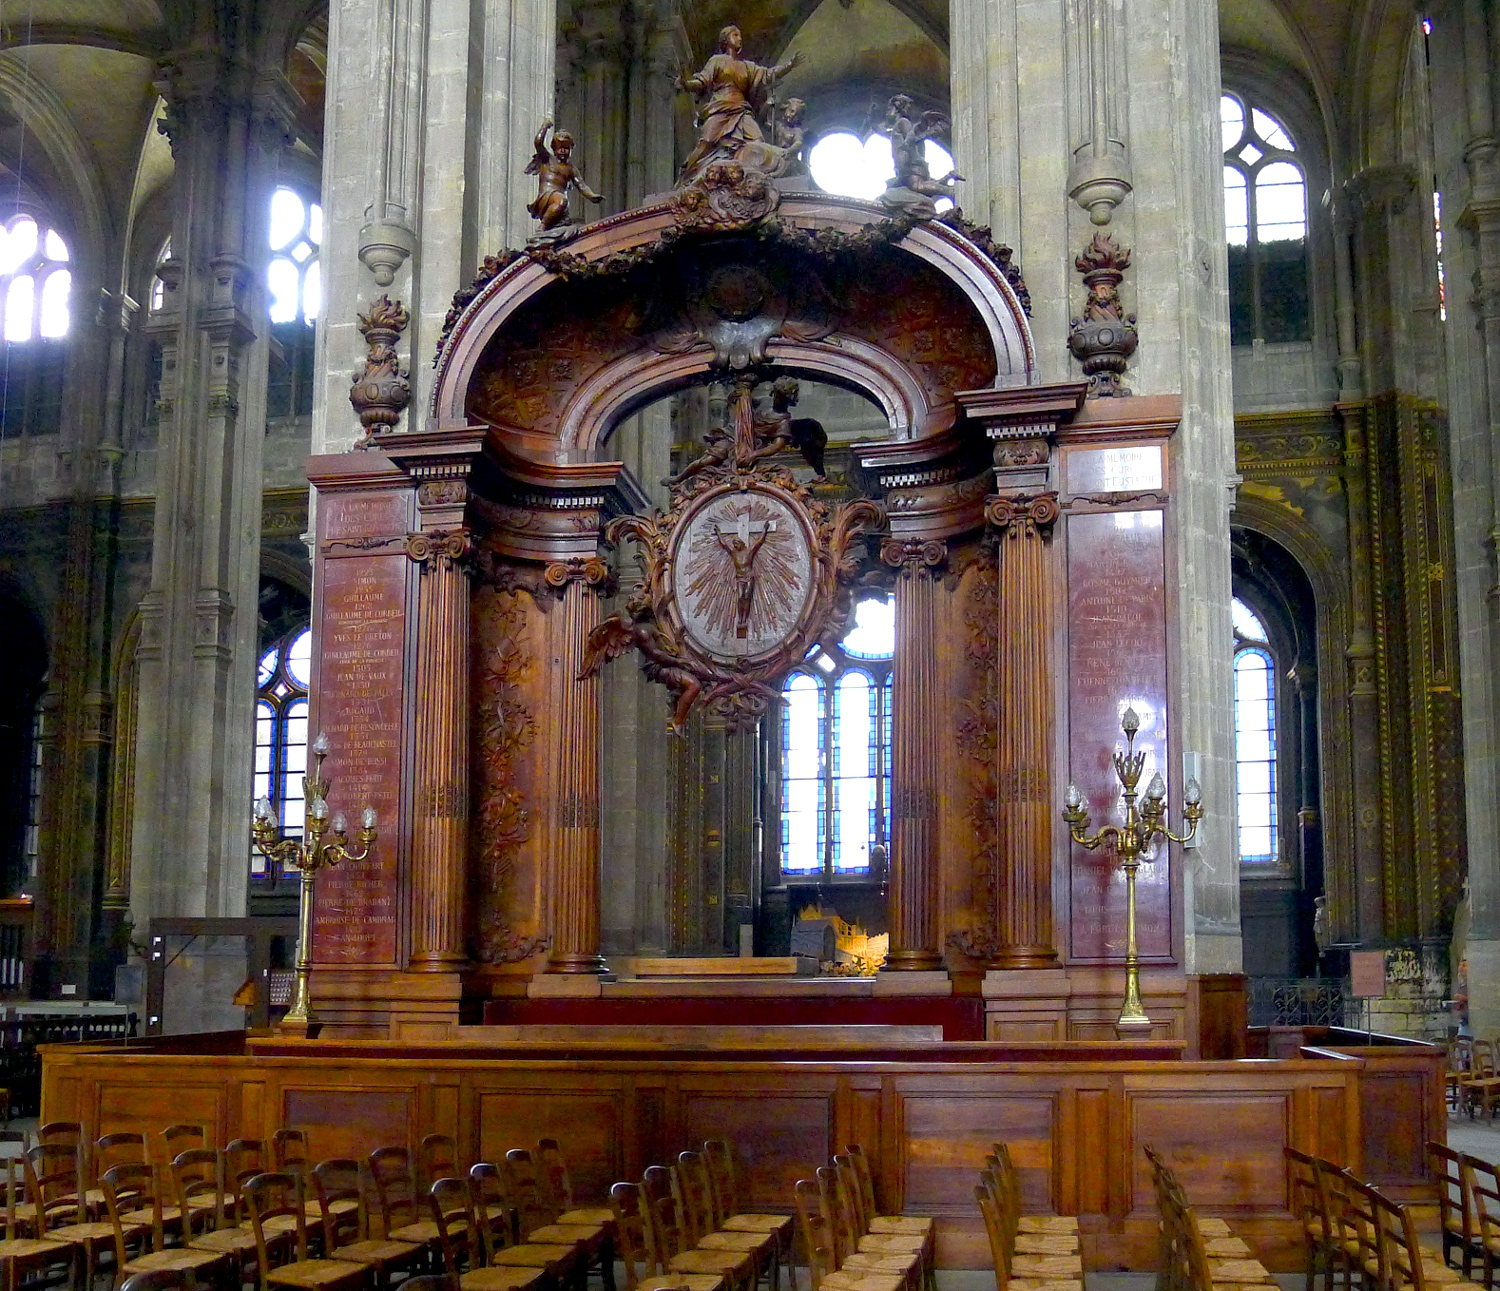 fichier p1020659 paris ier eglise saint eustache banc d 39 oeuvre rwk jpg wikip dia. Black Bedroom Furniture Sets. Home Design Ideas